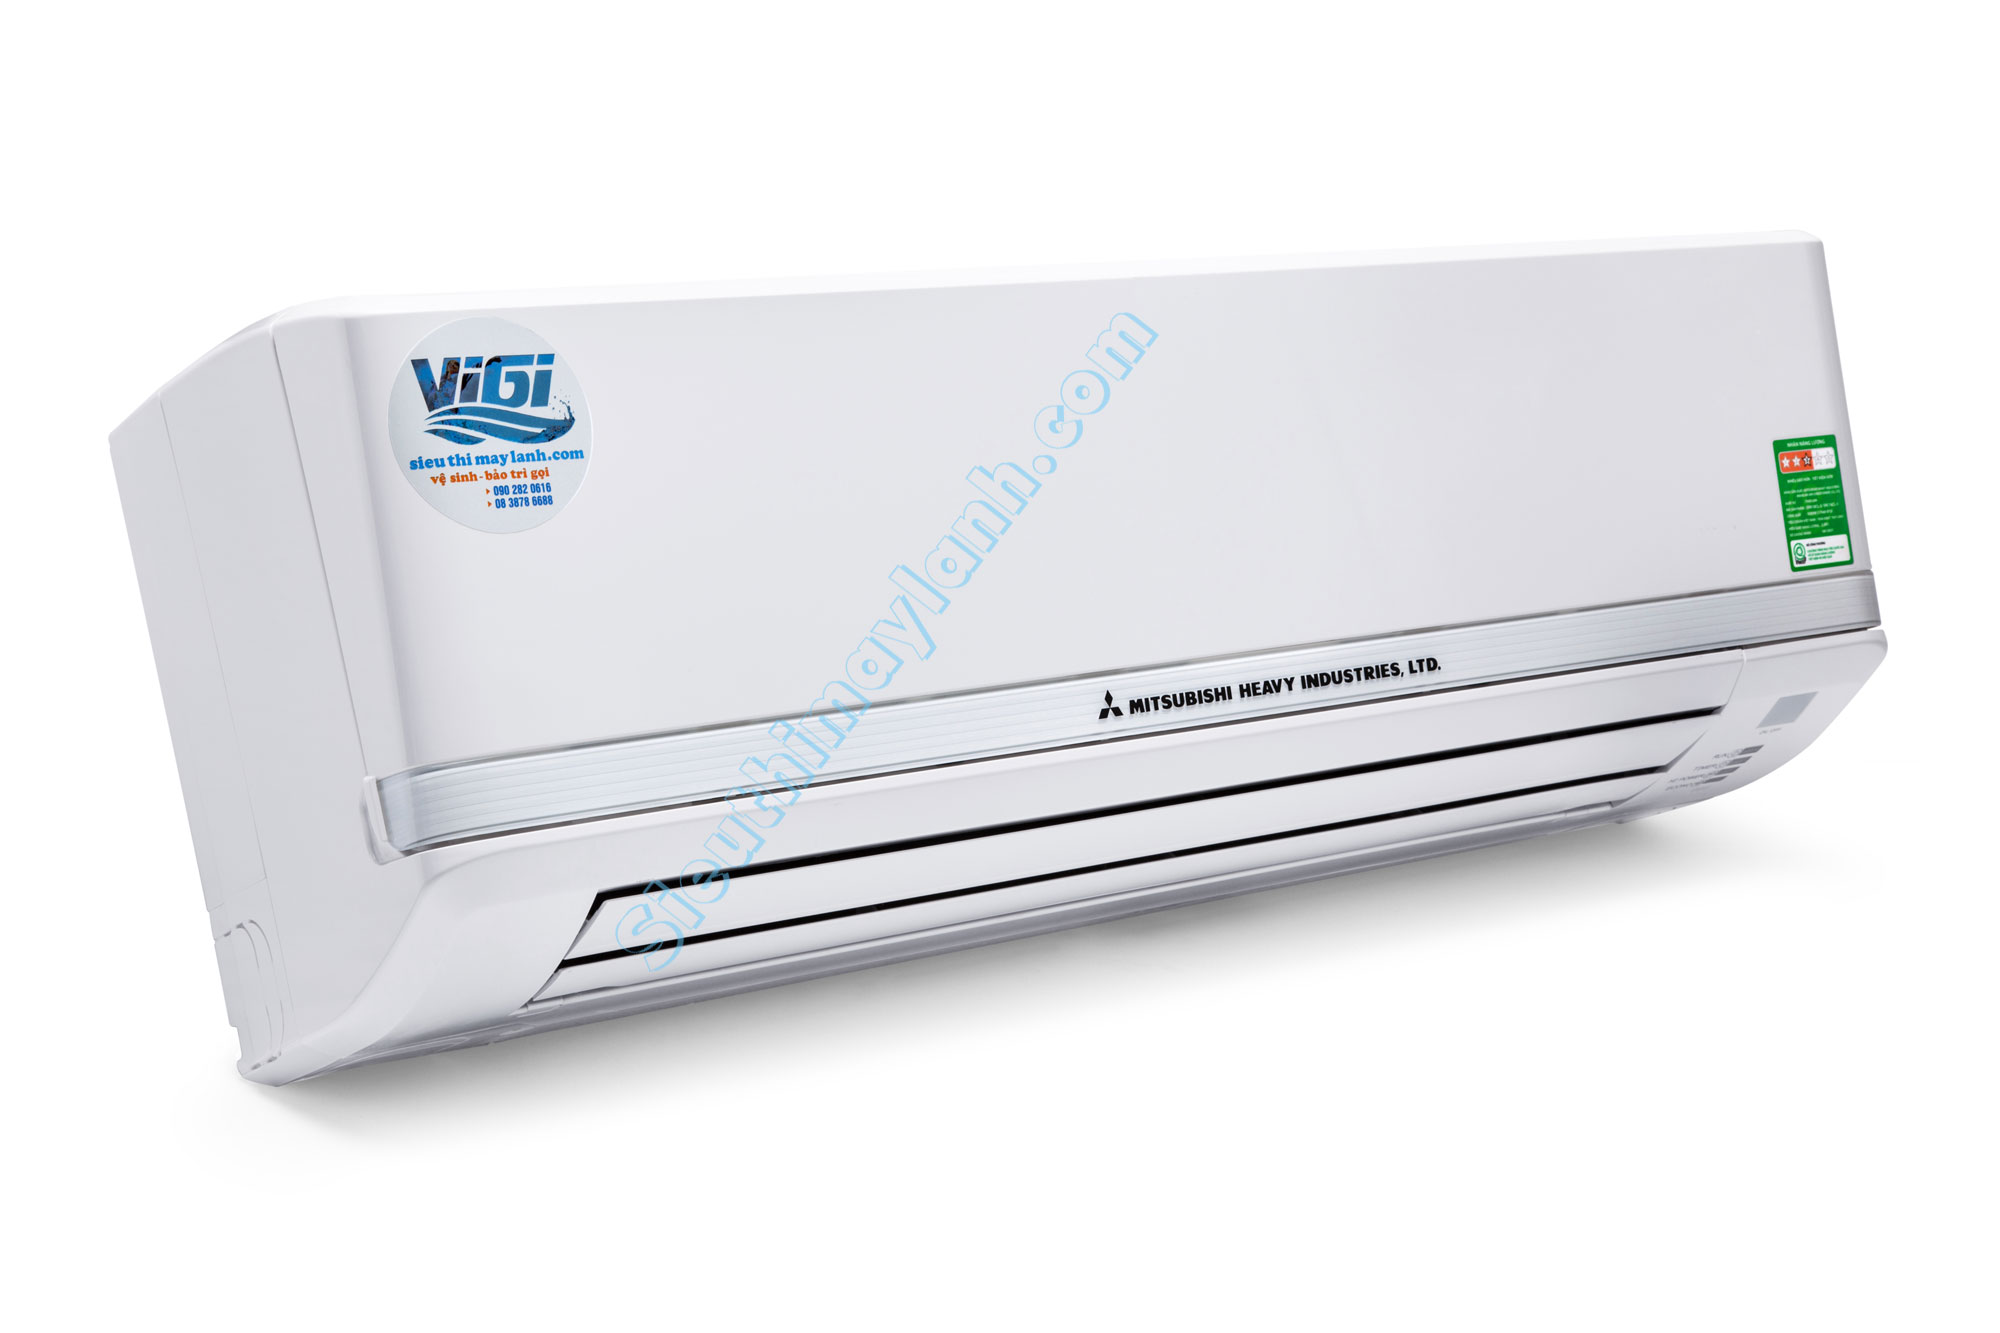 mitsubishi components pead air ac ducted ductless horizontal btu indoor commercial conditioners unit